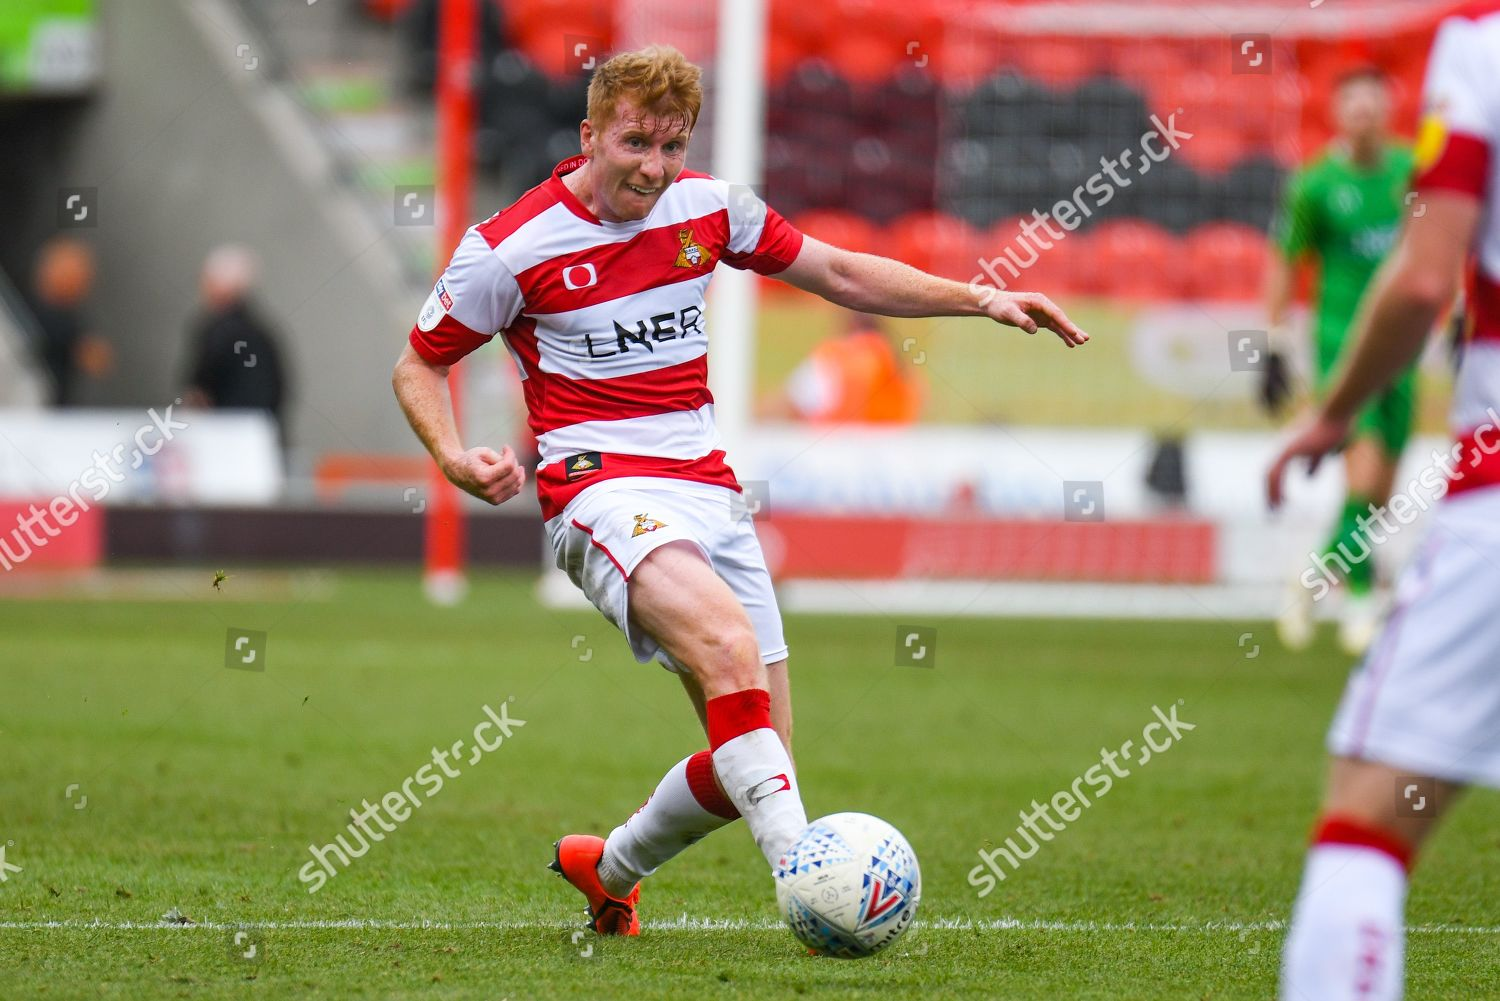 Brad Halliday Doncaster Rovers 2 passes ball Editorial Stock